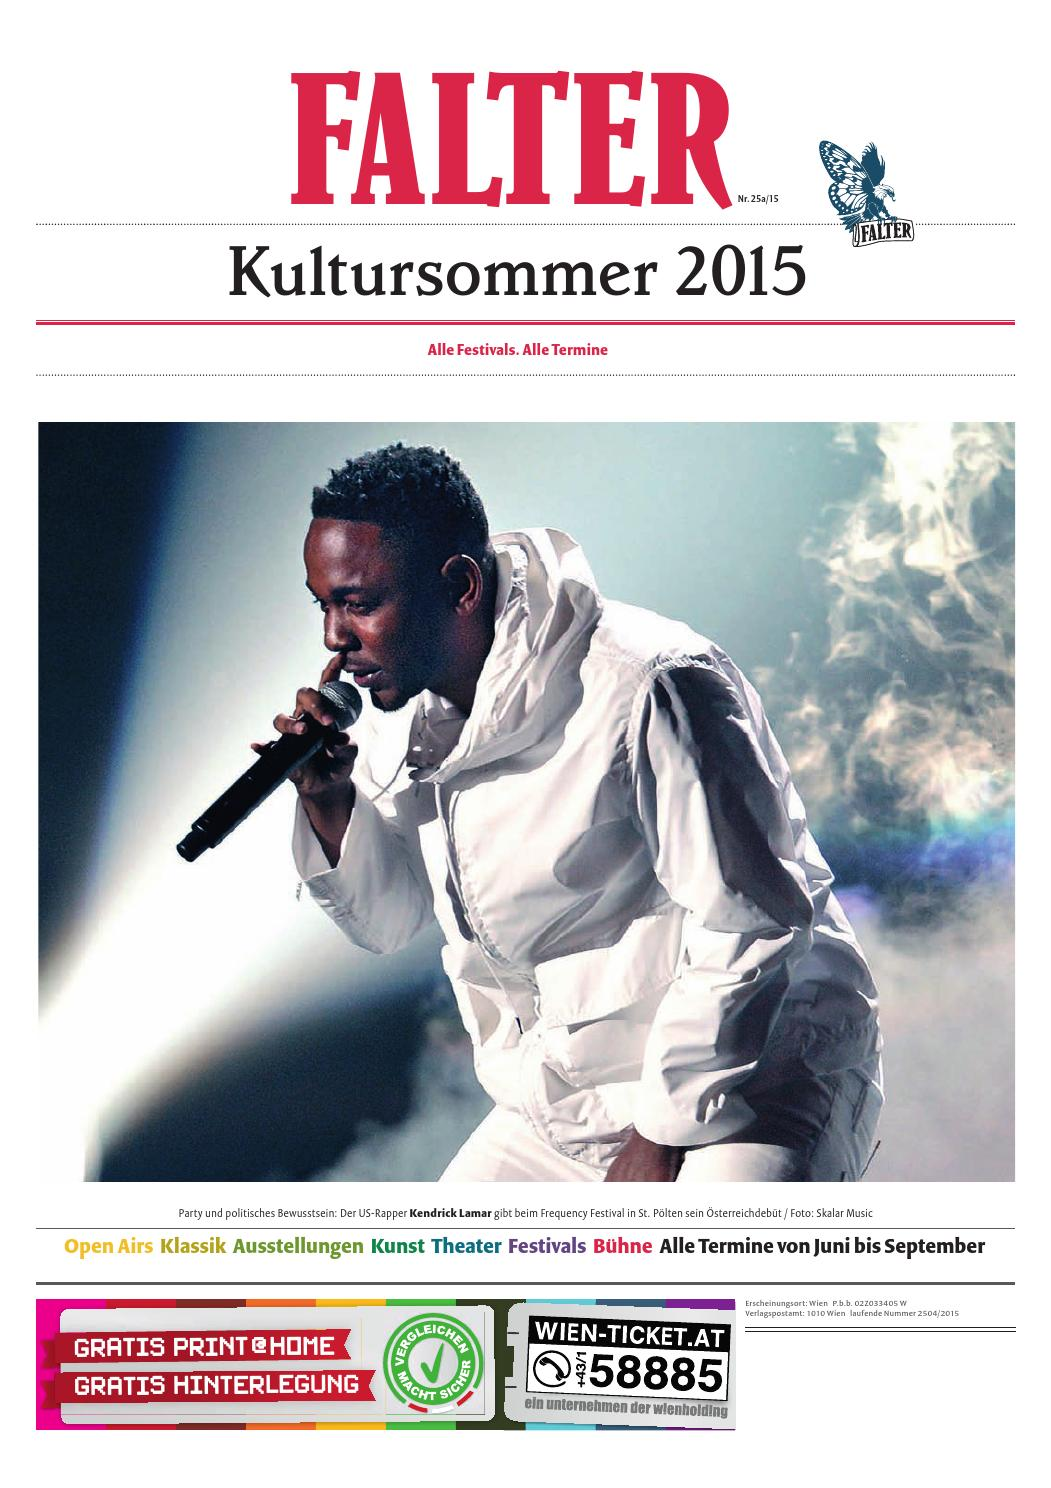 Kultursommer 2015 By Falter Verlagsgesellschaft Mbh Issuu Circuits 8085 Projects Blog Archive Hobbyfmtransmittercircuit